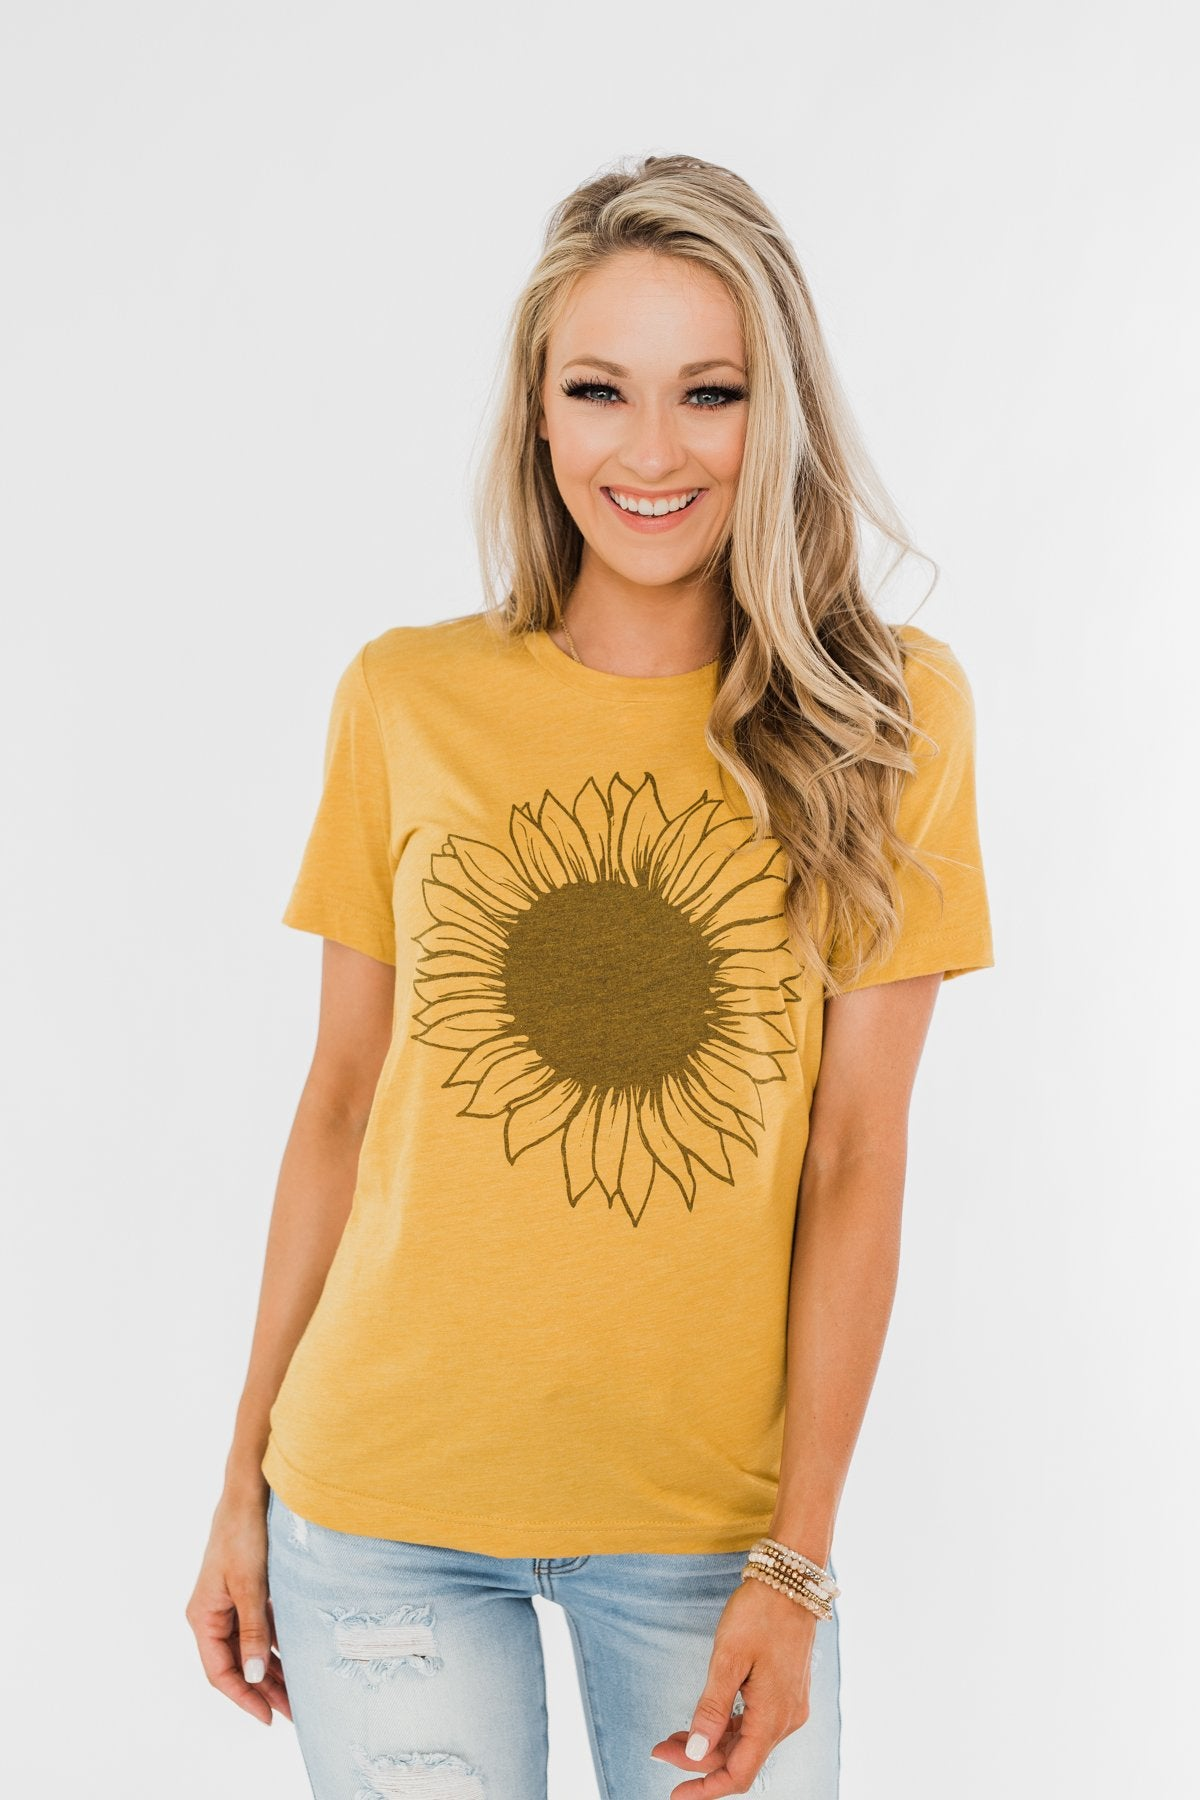 Simple Sunflower Graphic Tee- Yellow